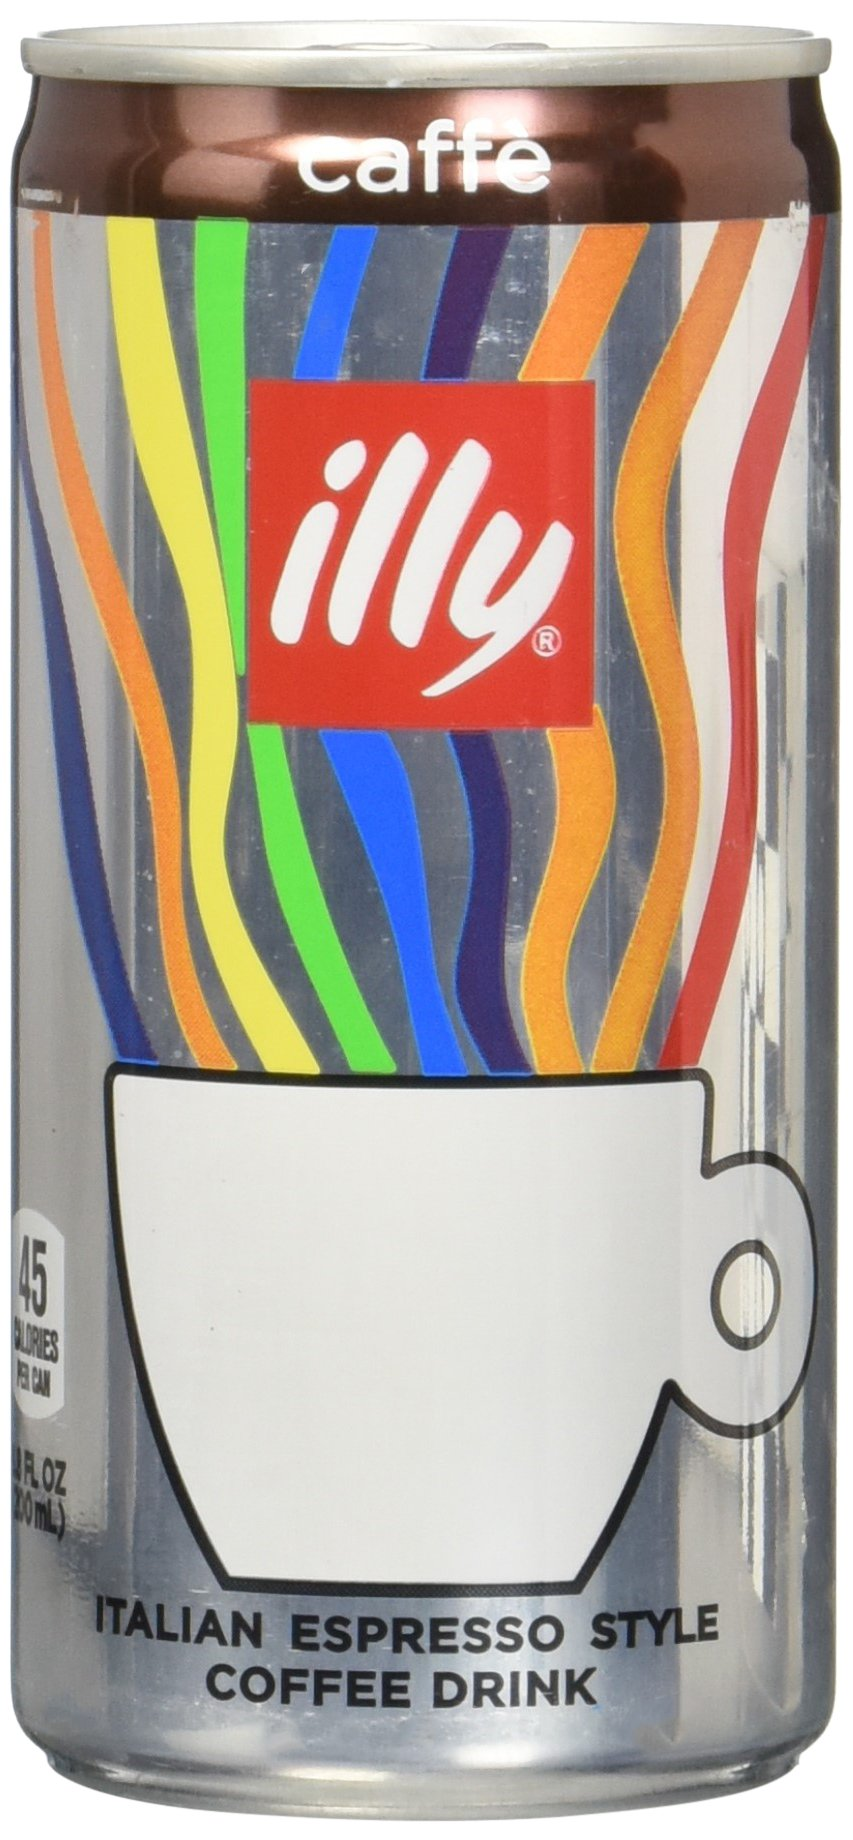 illy Ready-to-Drink Caffè, Authentic Italian Coffee, Made with 100% Arabica Coffee, All-Natural, No Preservatives, Beet Sugar, 6.8 fl oz (Pack of 12) by Illy